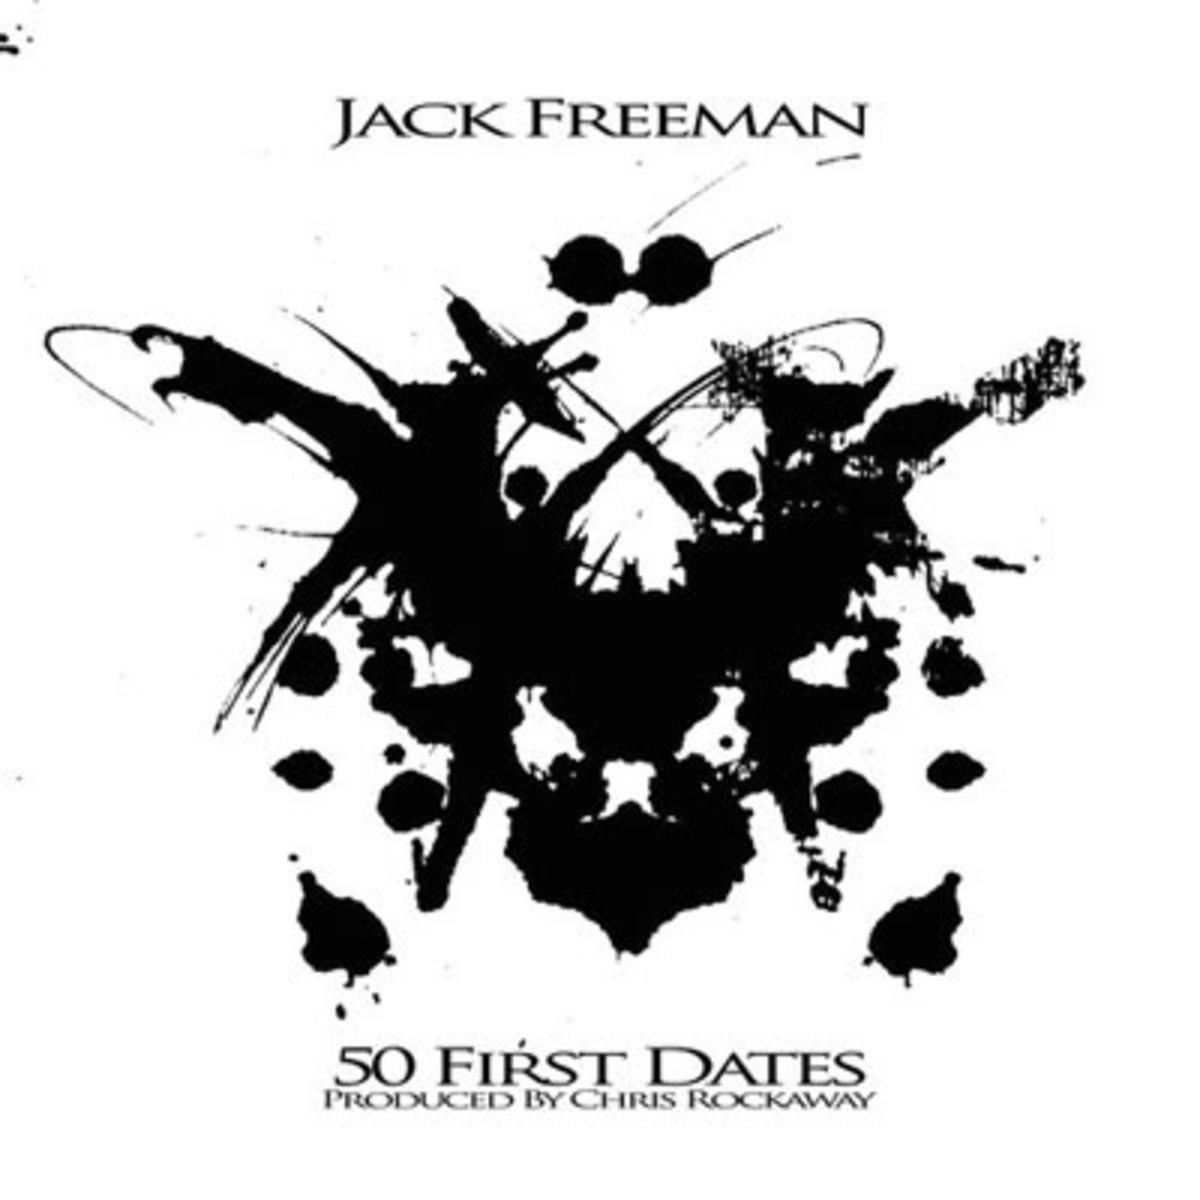 jackfreeman-50firstdates.jpg